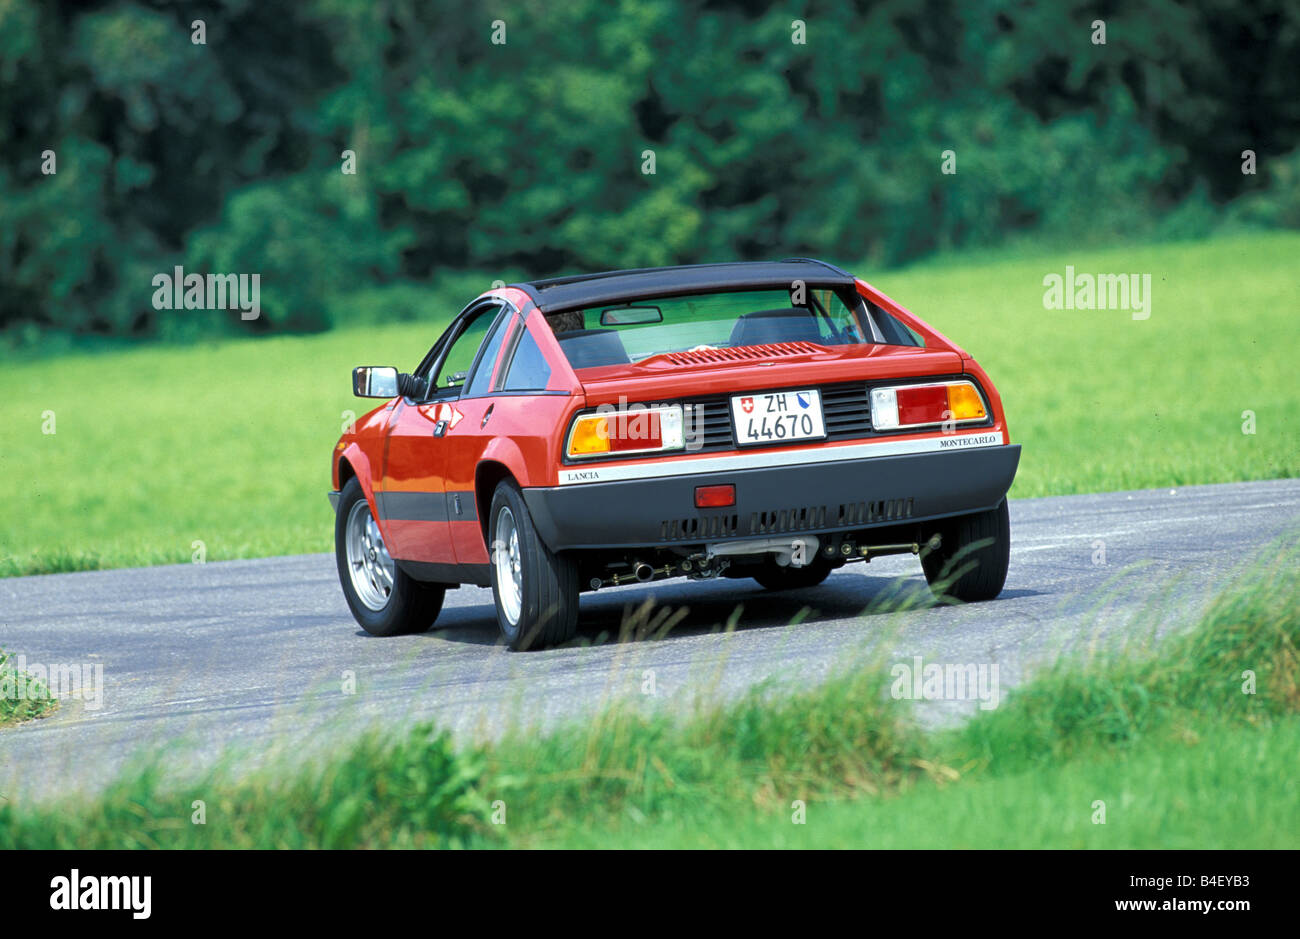 Car, Lancia Beta Montecarlo, old car, red, Coupé, Coupe, sports car, 1970s, seventies,  1980s, eighties, driving, Stock Photo